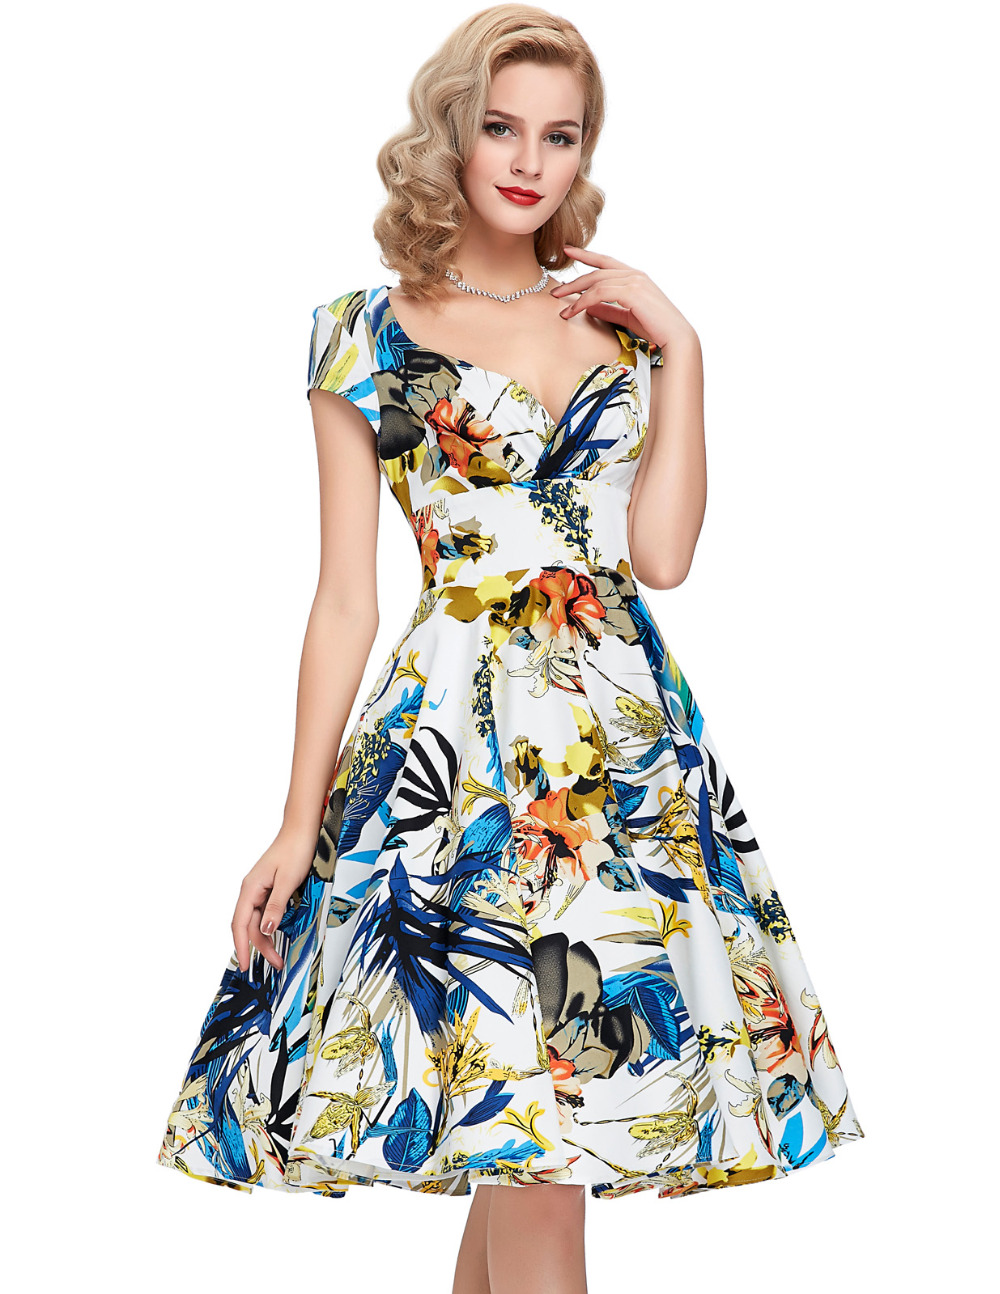 50s Vintage Dresses 2016 New Style Summer Dress Audrey Hepburn Vestidos Cap Sleeve Fl Printed Robe De Femininos In From Women S